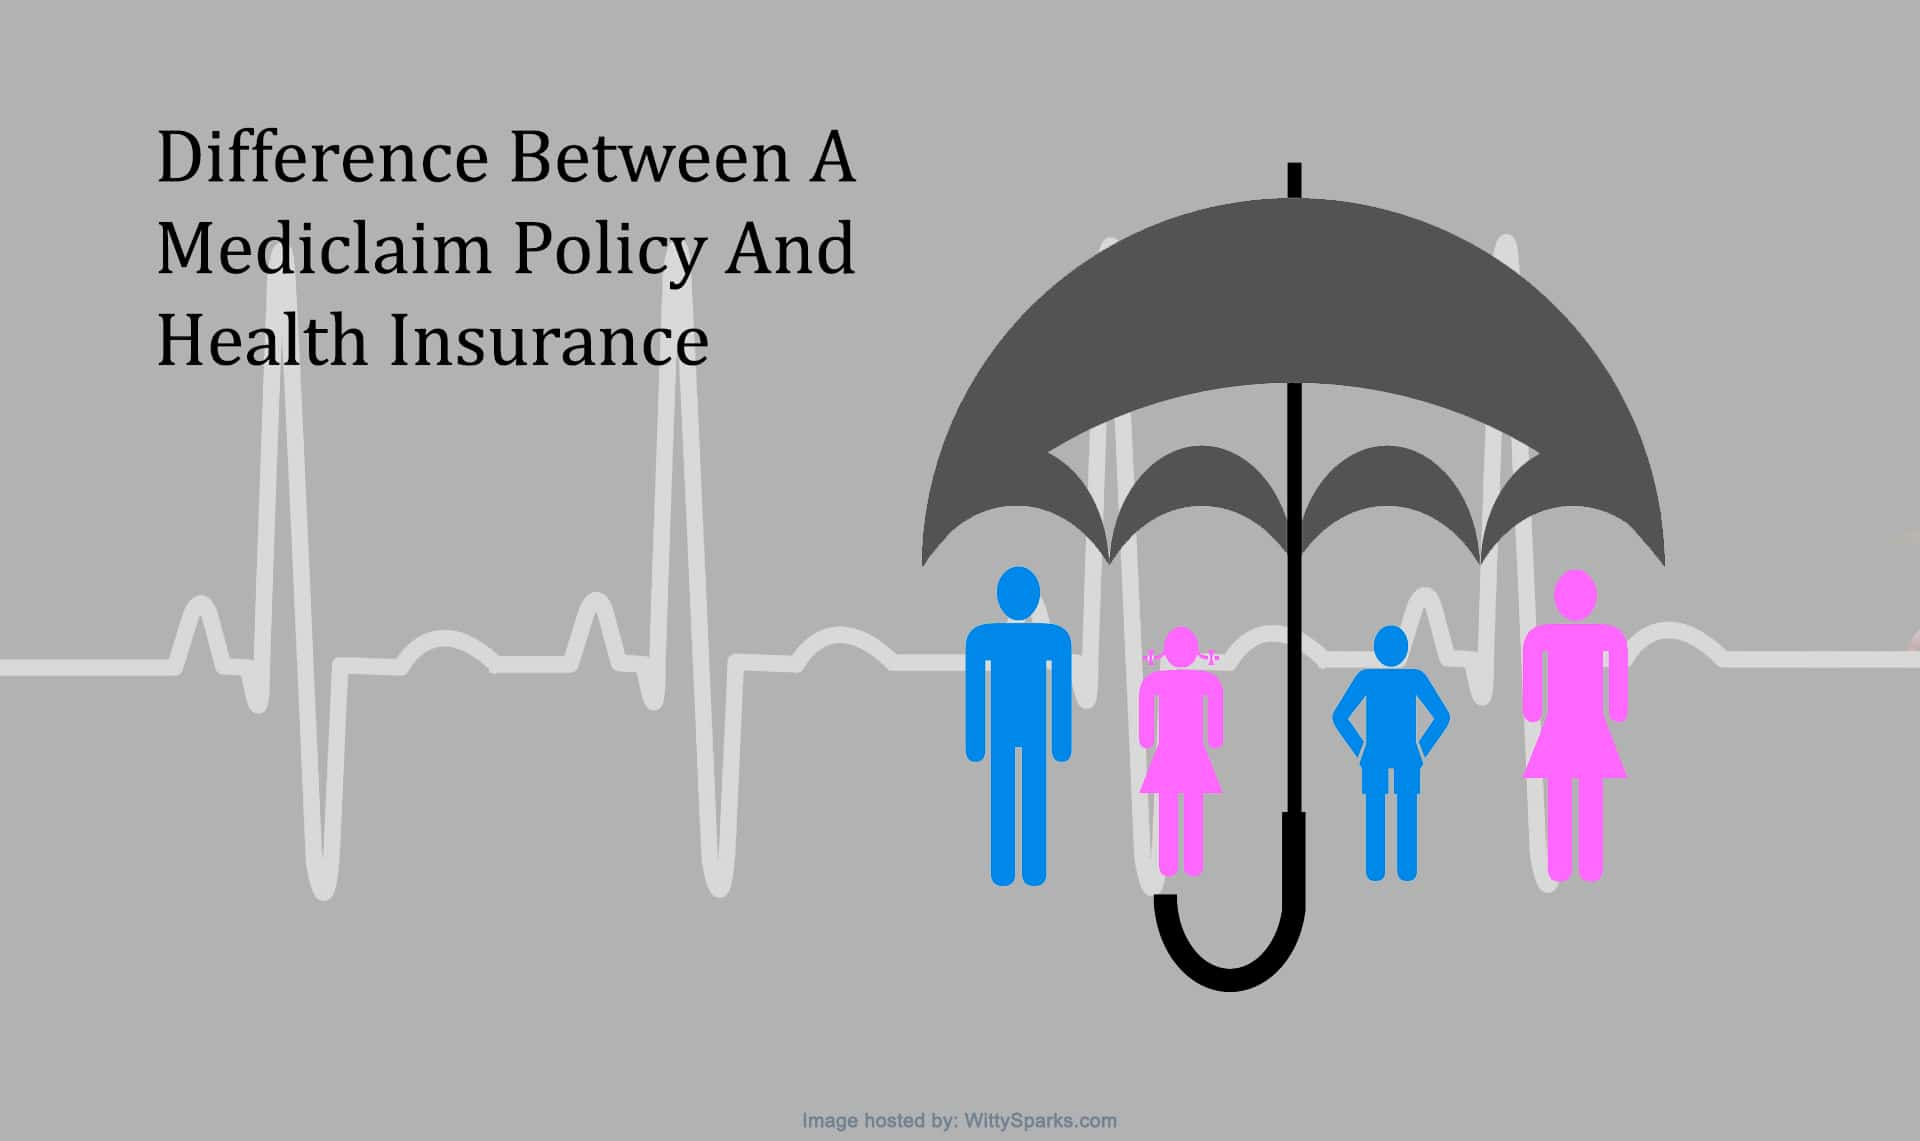 Mediclaim Policy and Health Insurance Difference